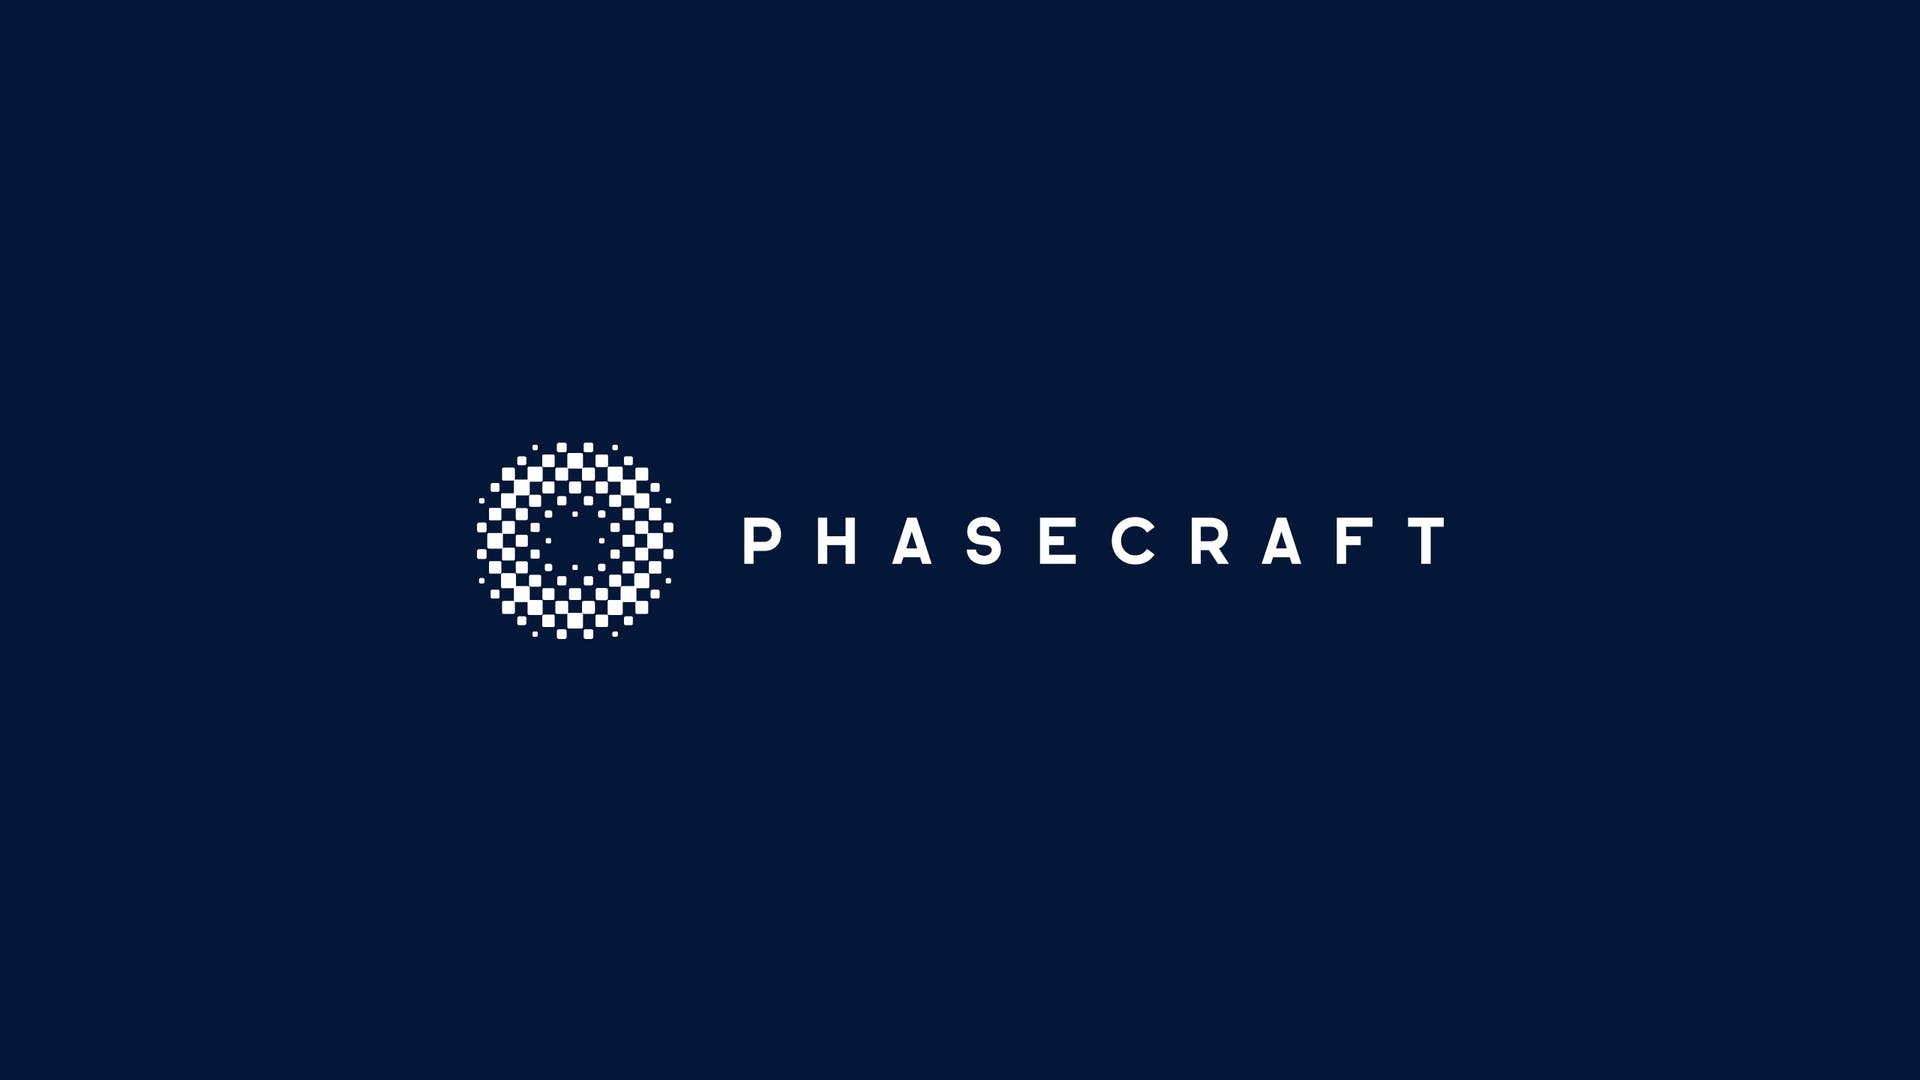 Phasecraft logo